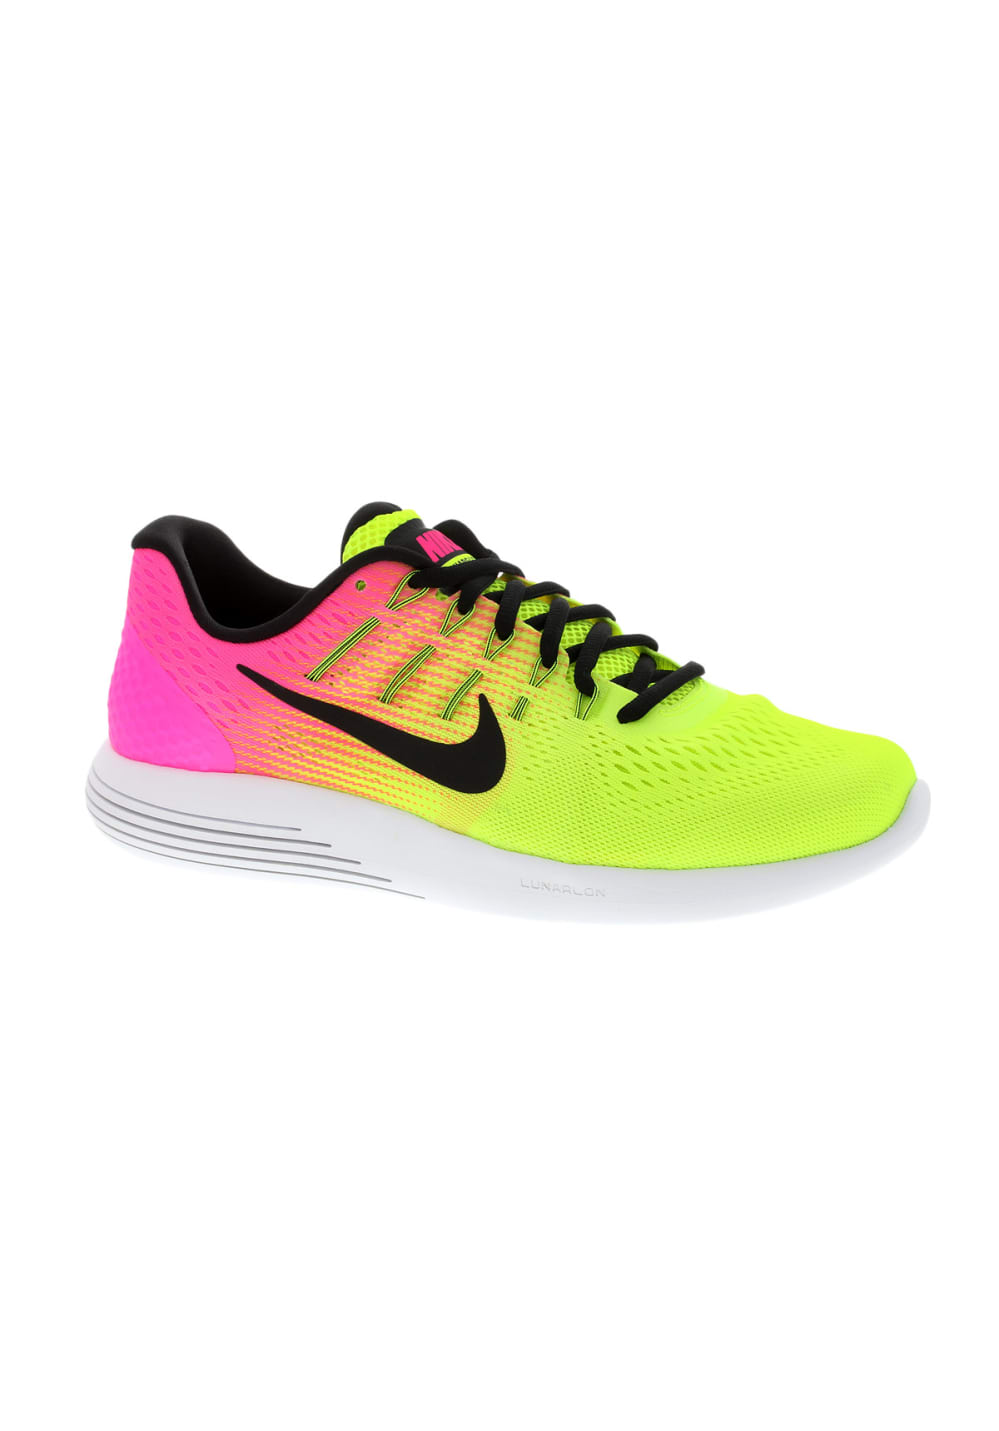 newest collection d3d64 6f7da Nike Lunarglide 8 OC - Running shoes for Women - Yellow